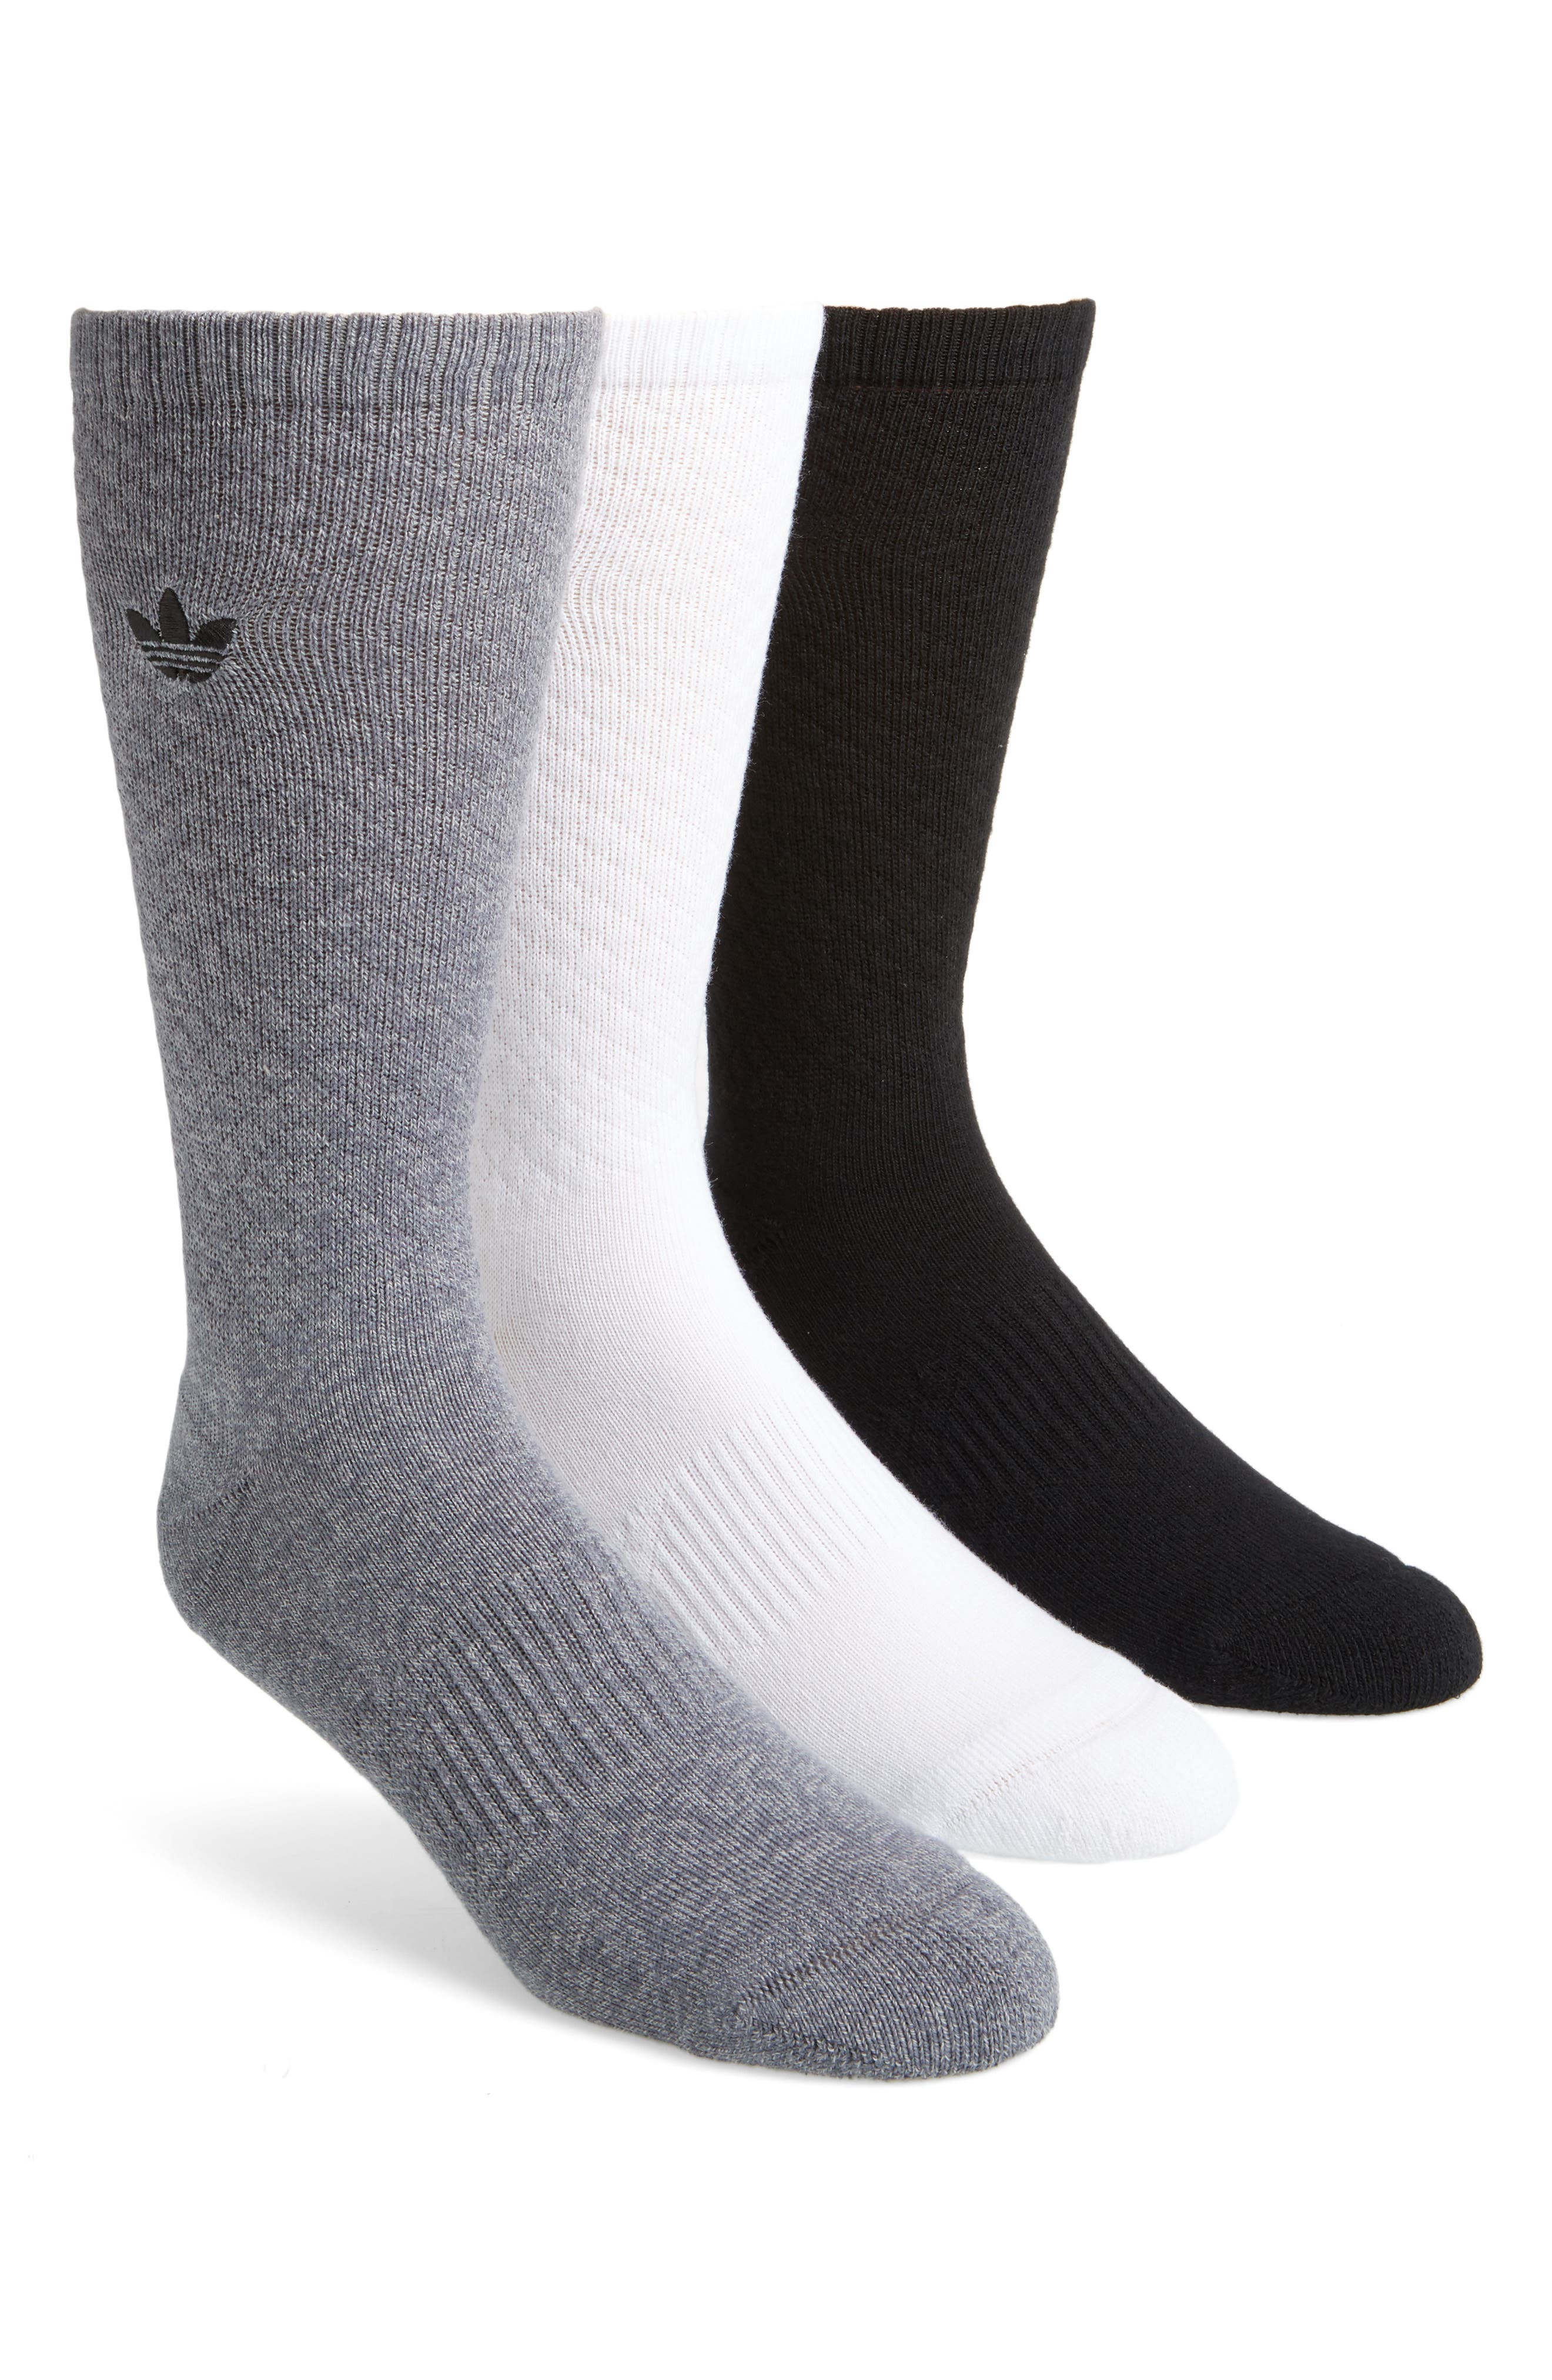 3-Pack Quilted Socks,                             Main thumbnail 1, color,                             White/ Black/ Onyx